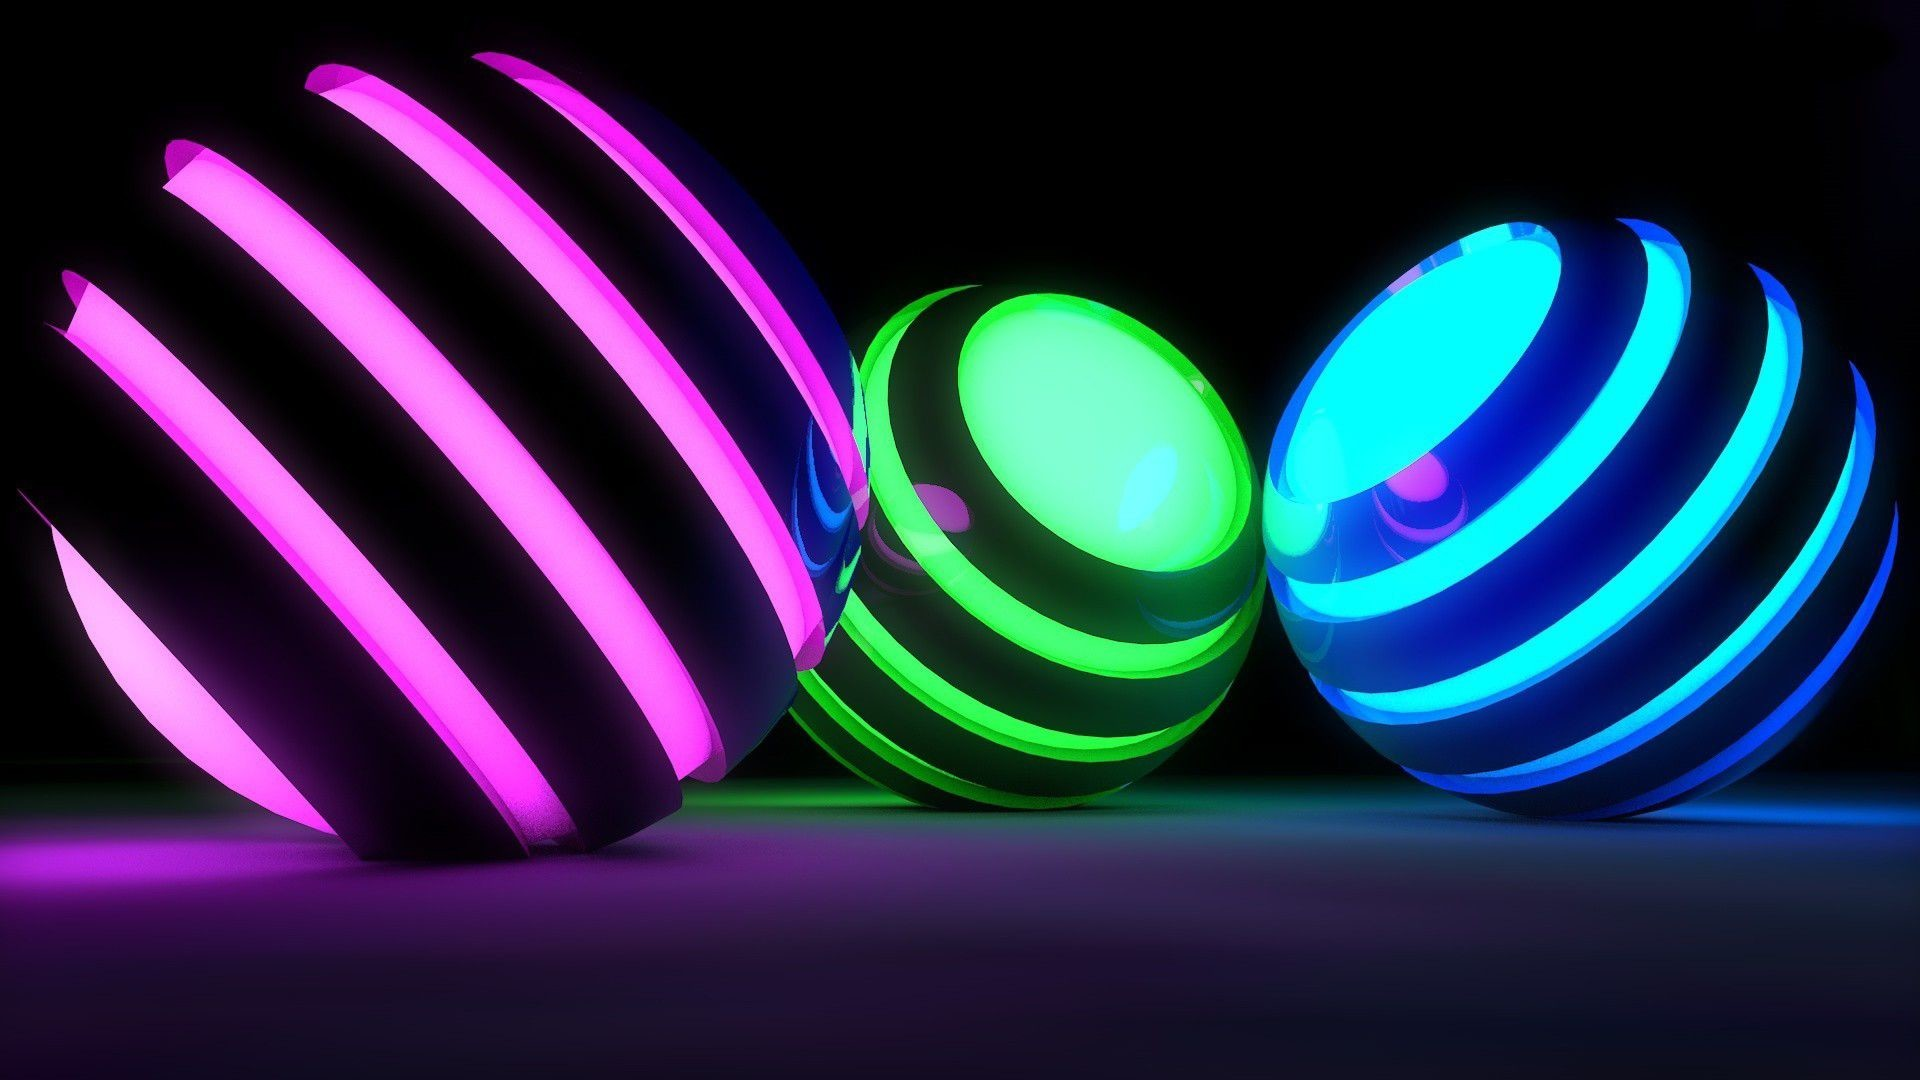 1920x1080 Neon Wallpapers : Find best latest Neon Wallpapers in HD for your PC  desktop background & mobile phones.